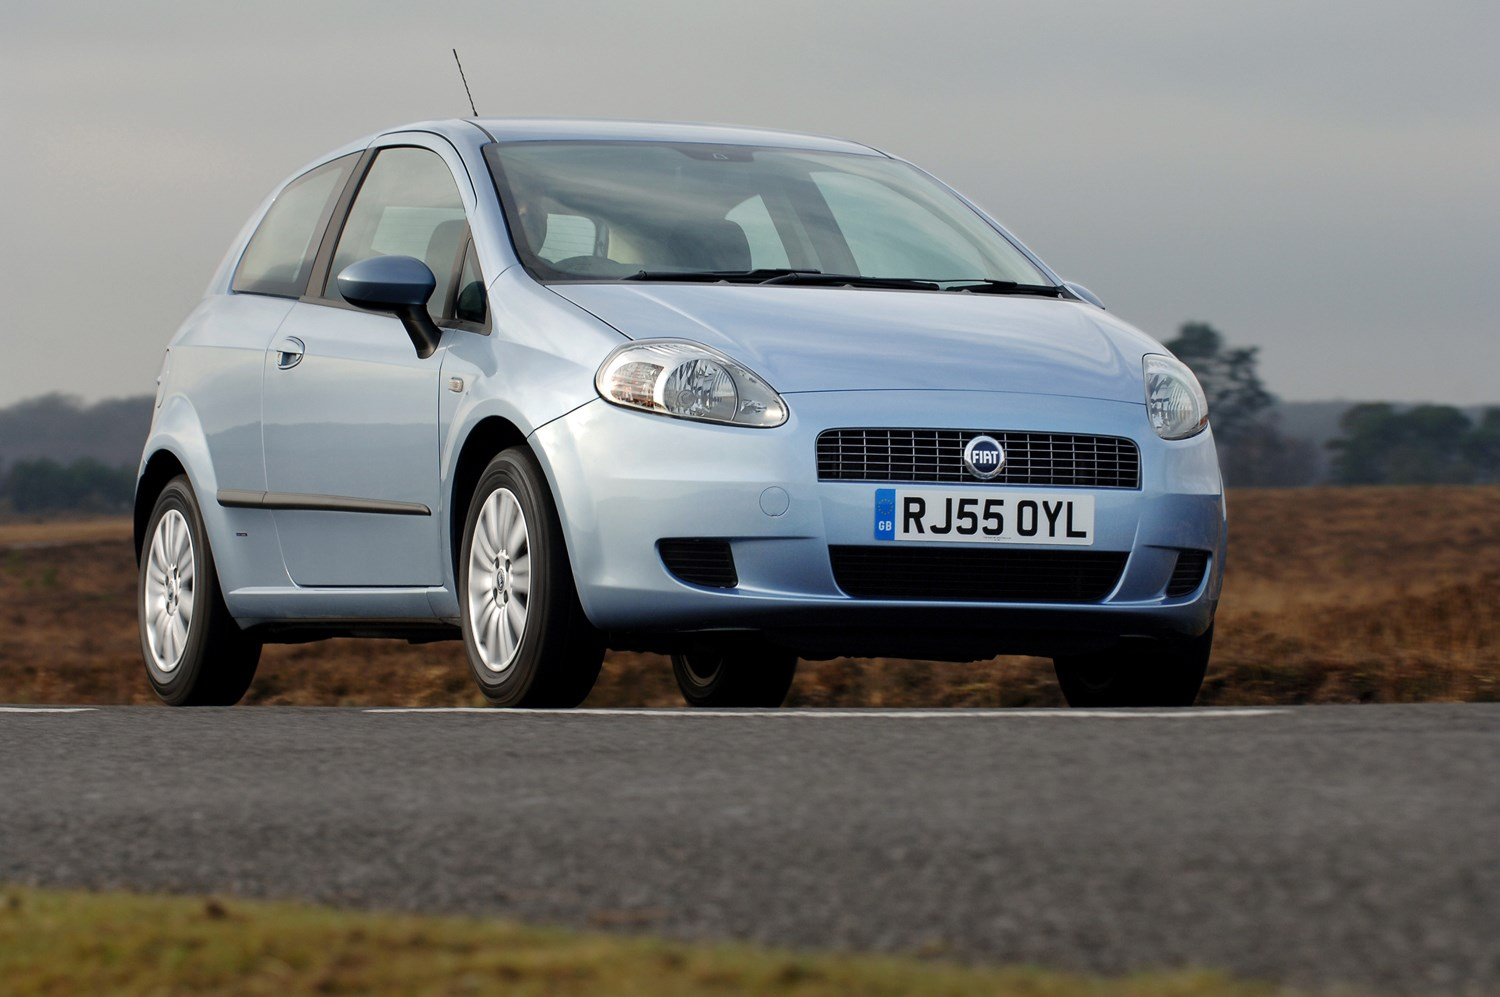 fiat grande punto hatchback 2006 2010 running costs. Black Bedroom Furniture Sets. Home Design Ideas